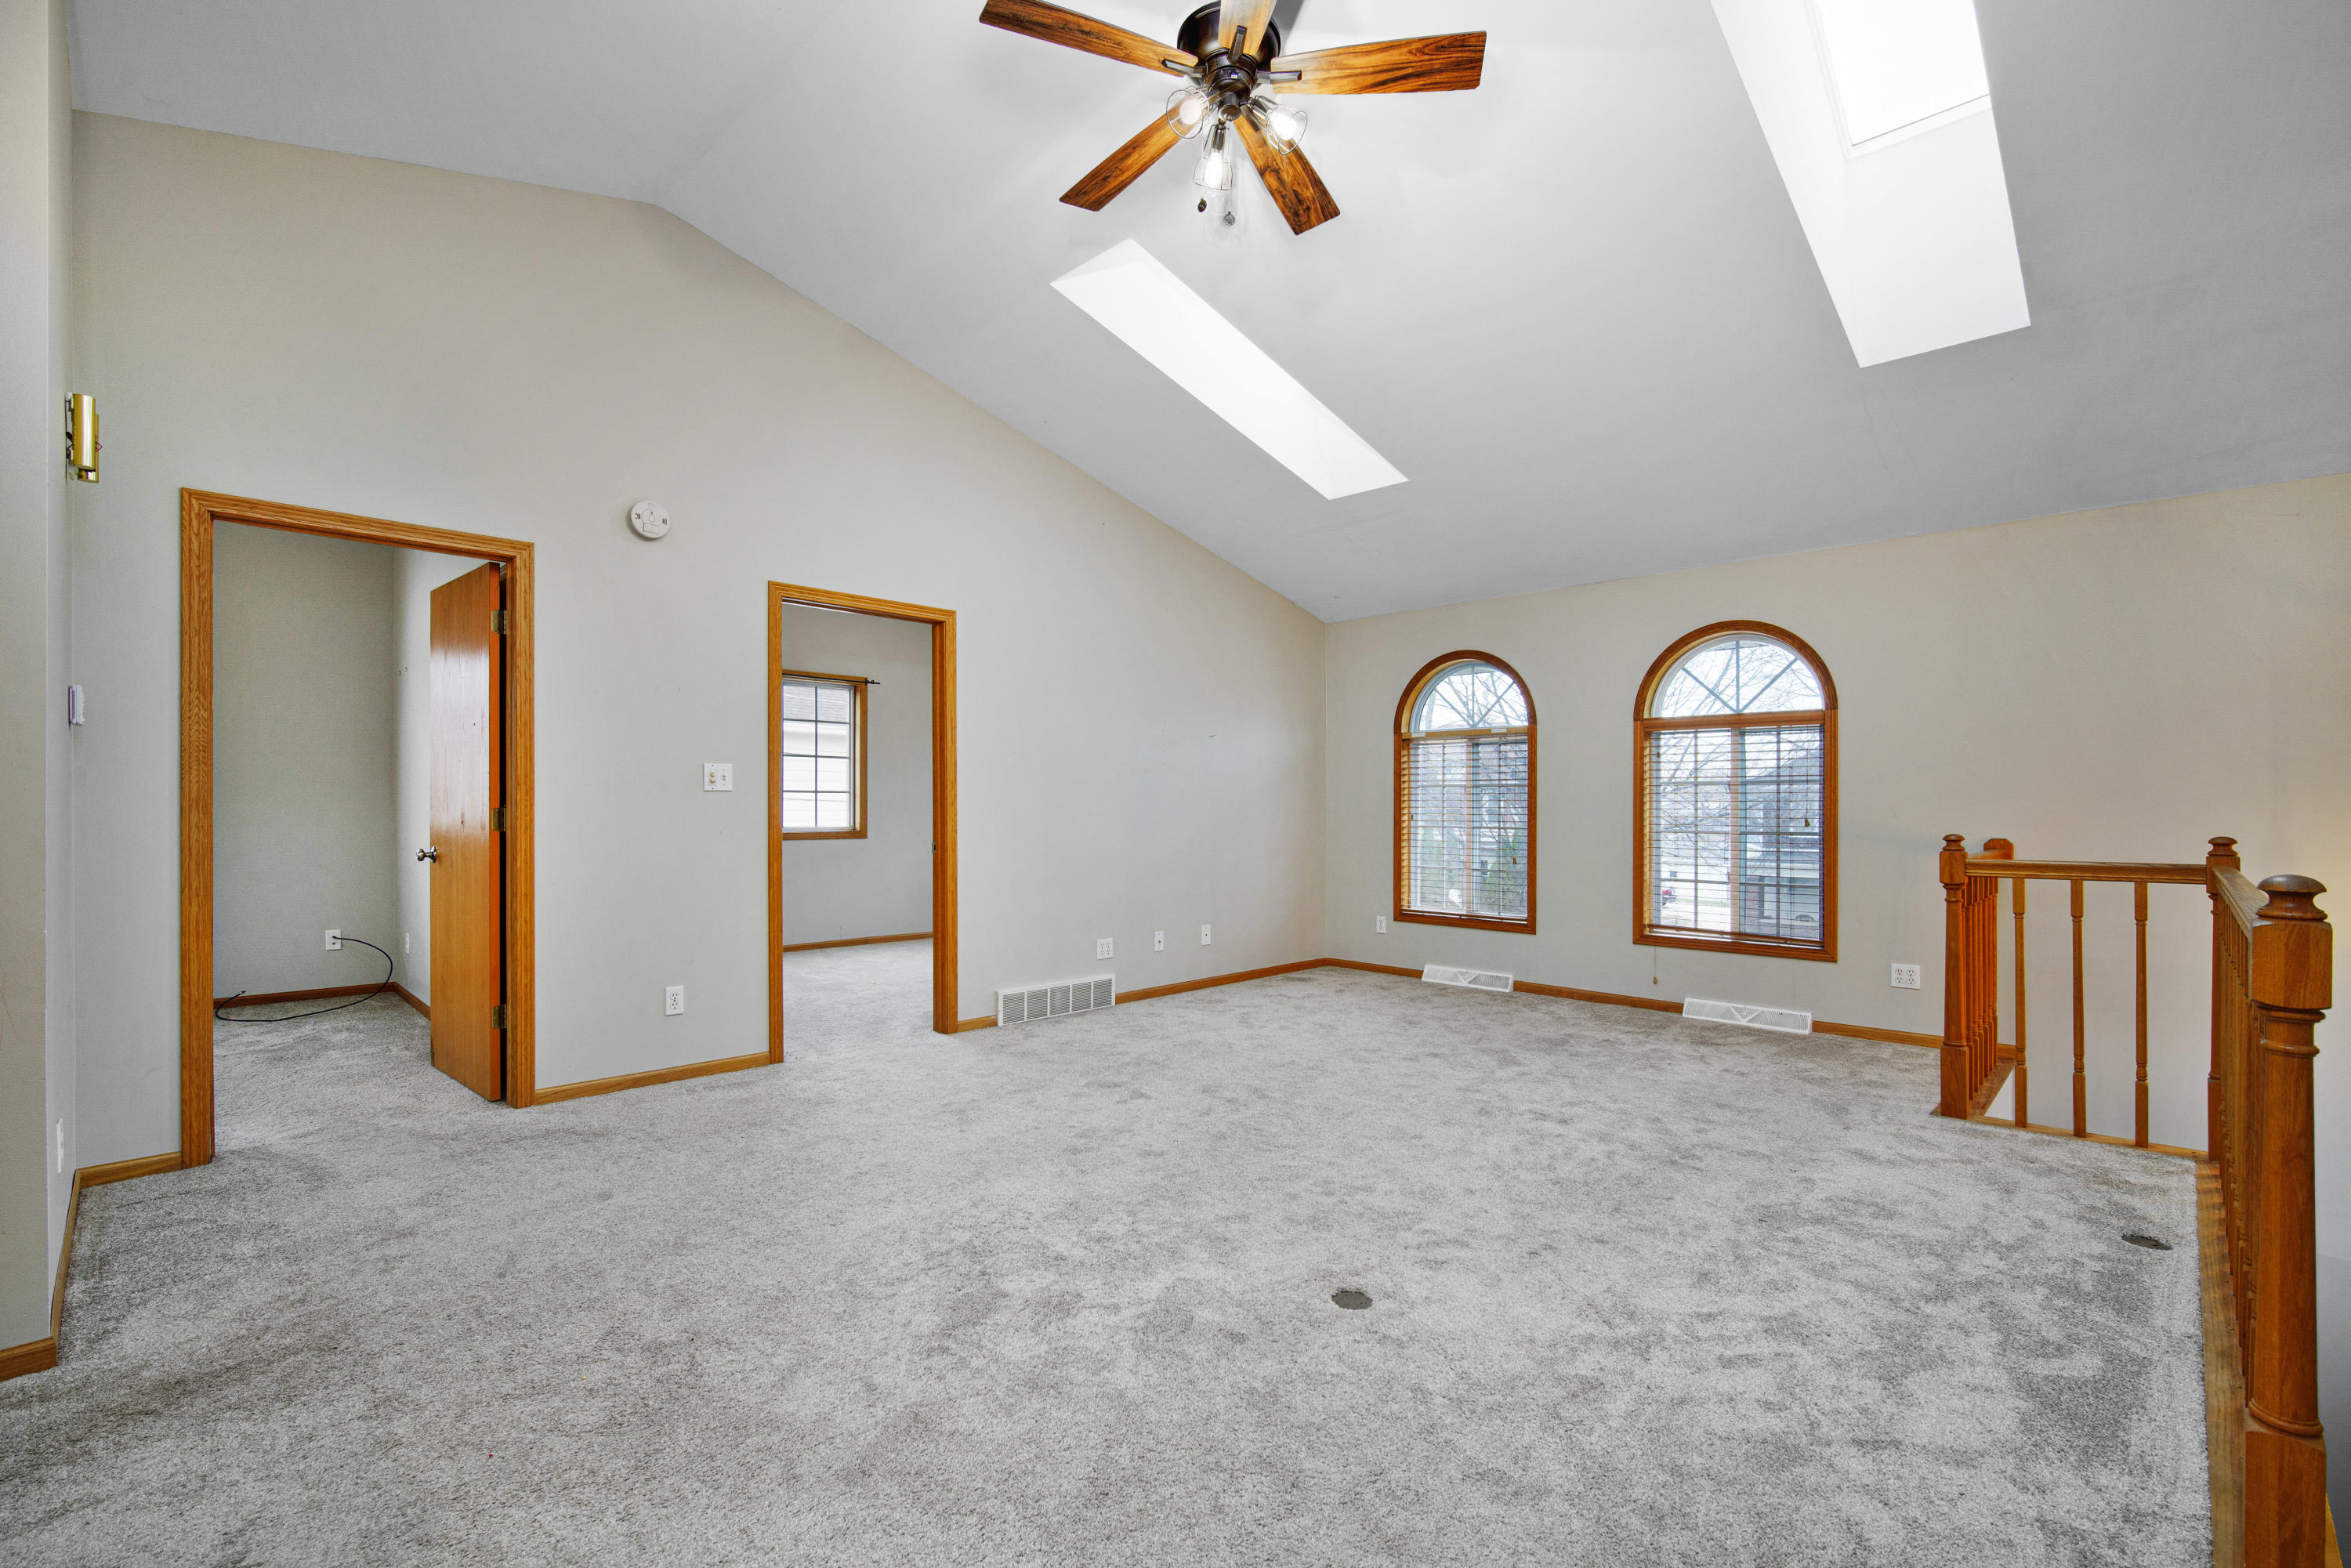 1412 16th St, Sheboygan, Wisconsin 53081, 3 Bedrooms Bedrooms, 5 Rooms Rooms,1 BathroomBathrooms,Single-family,For Sale,16th St,1719982